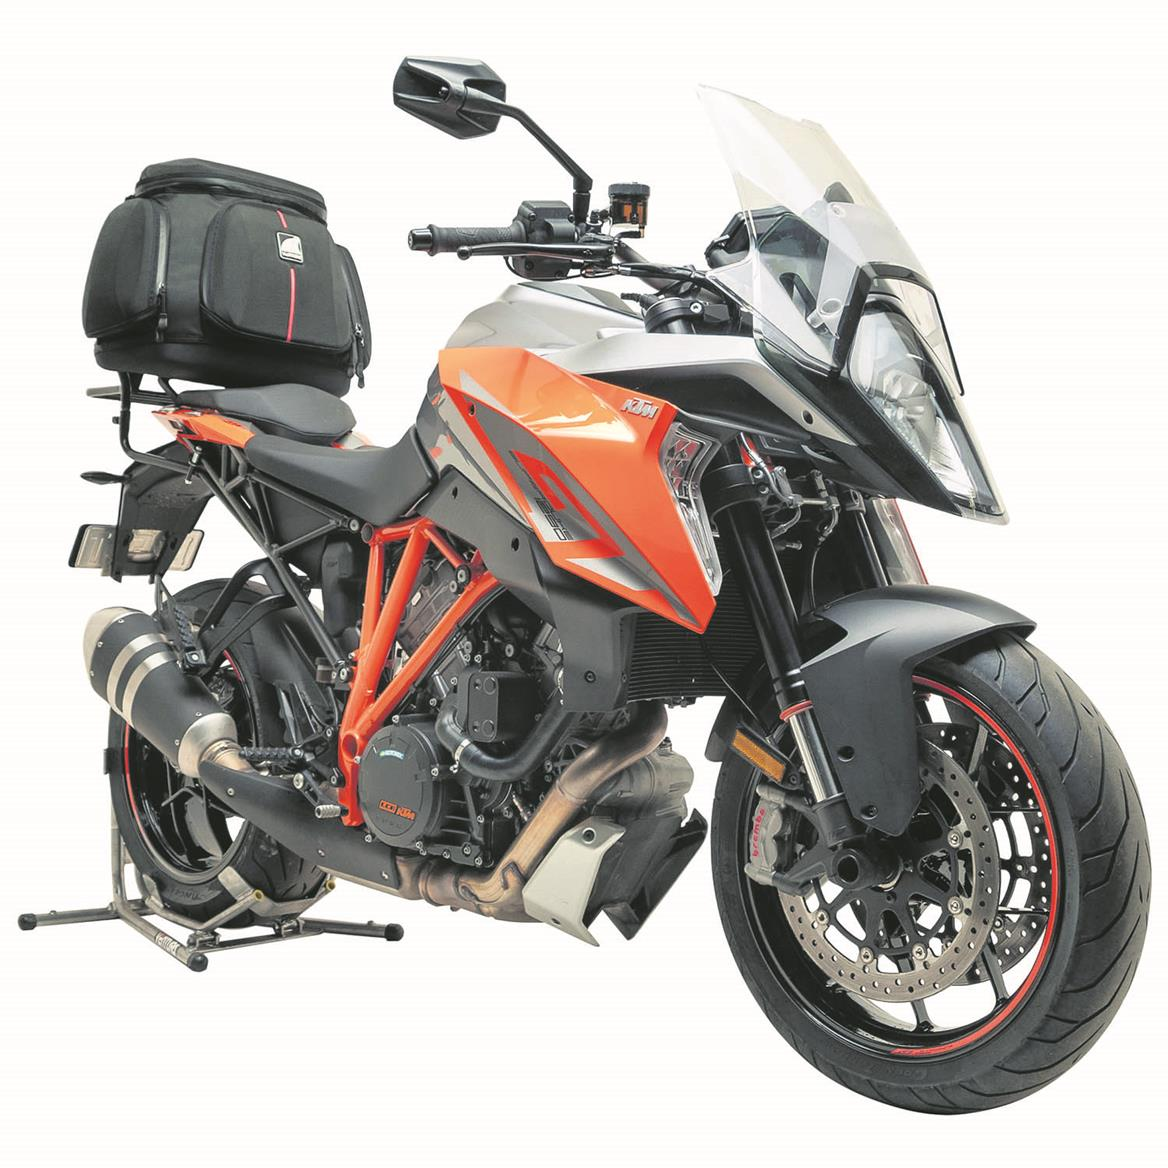 ventura luggage for ktm 1290 super duke gt rrp £340 | mcn